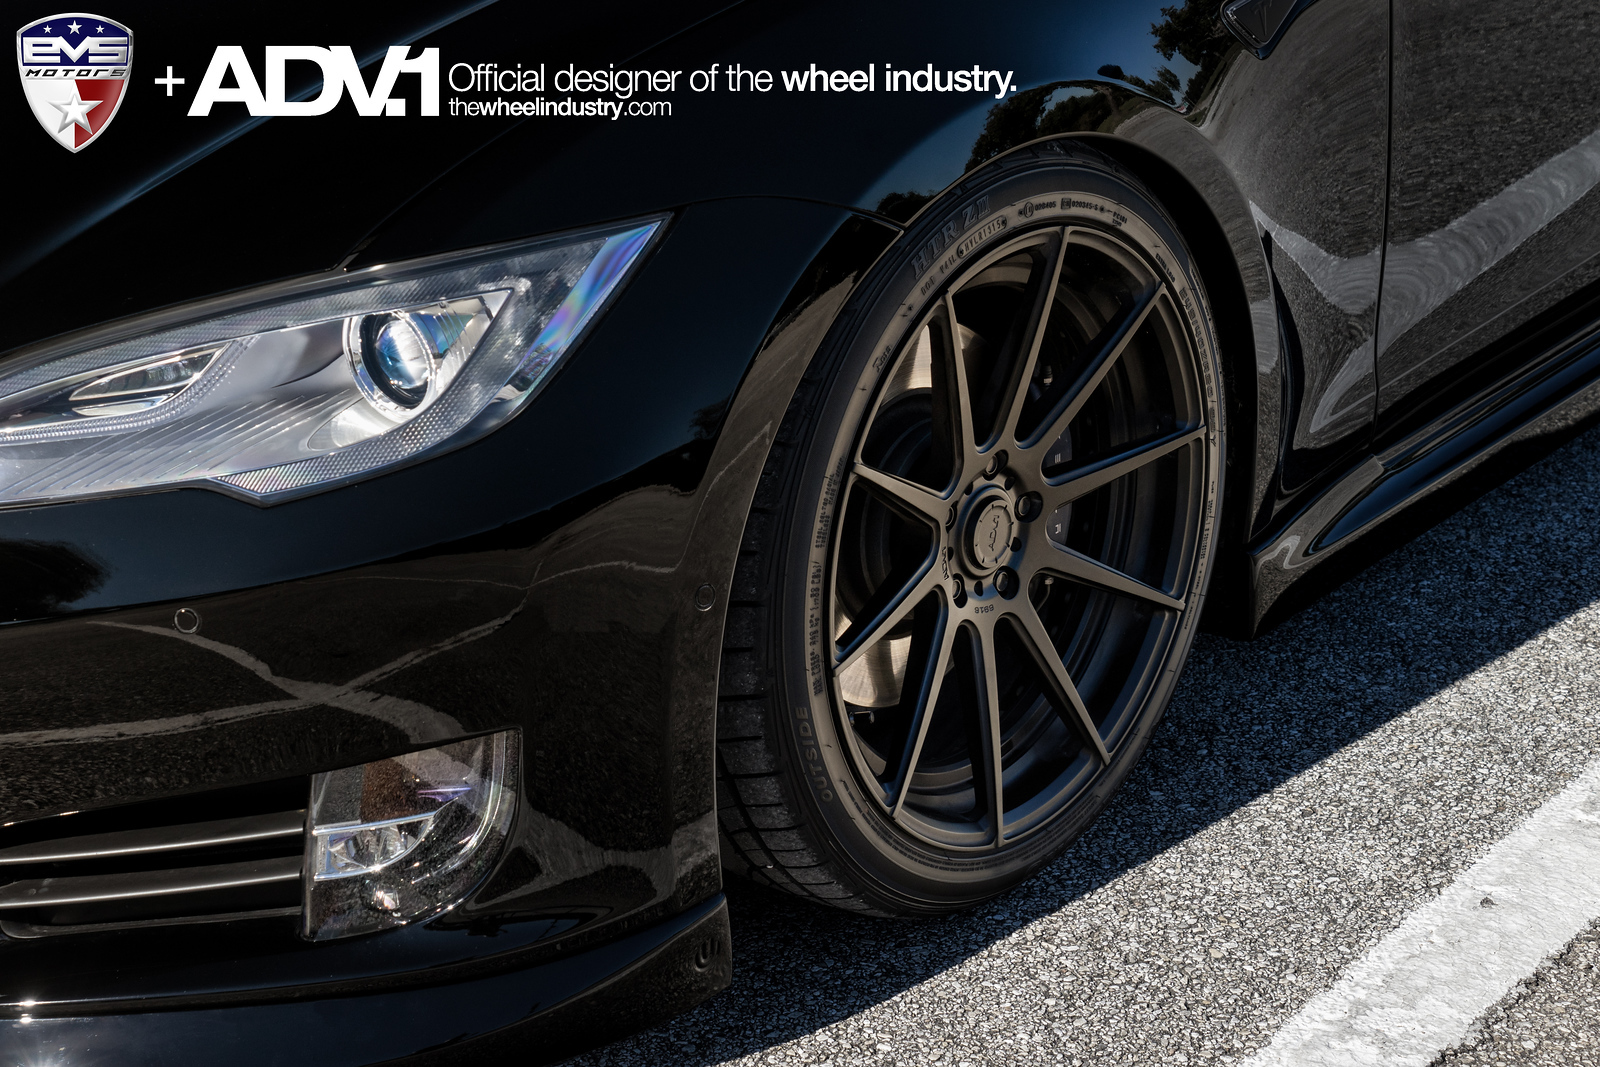 ADV1 Wheels - Houston's best